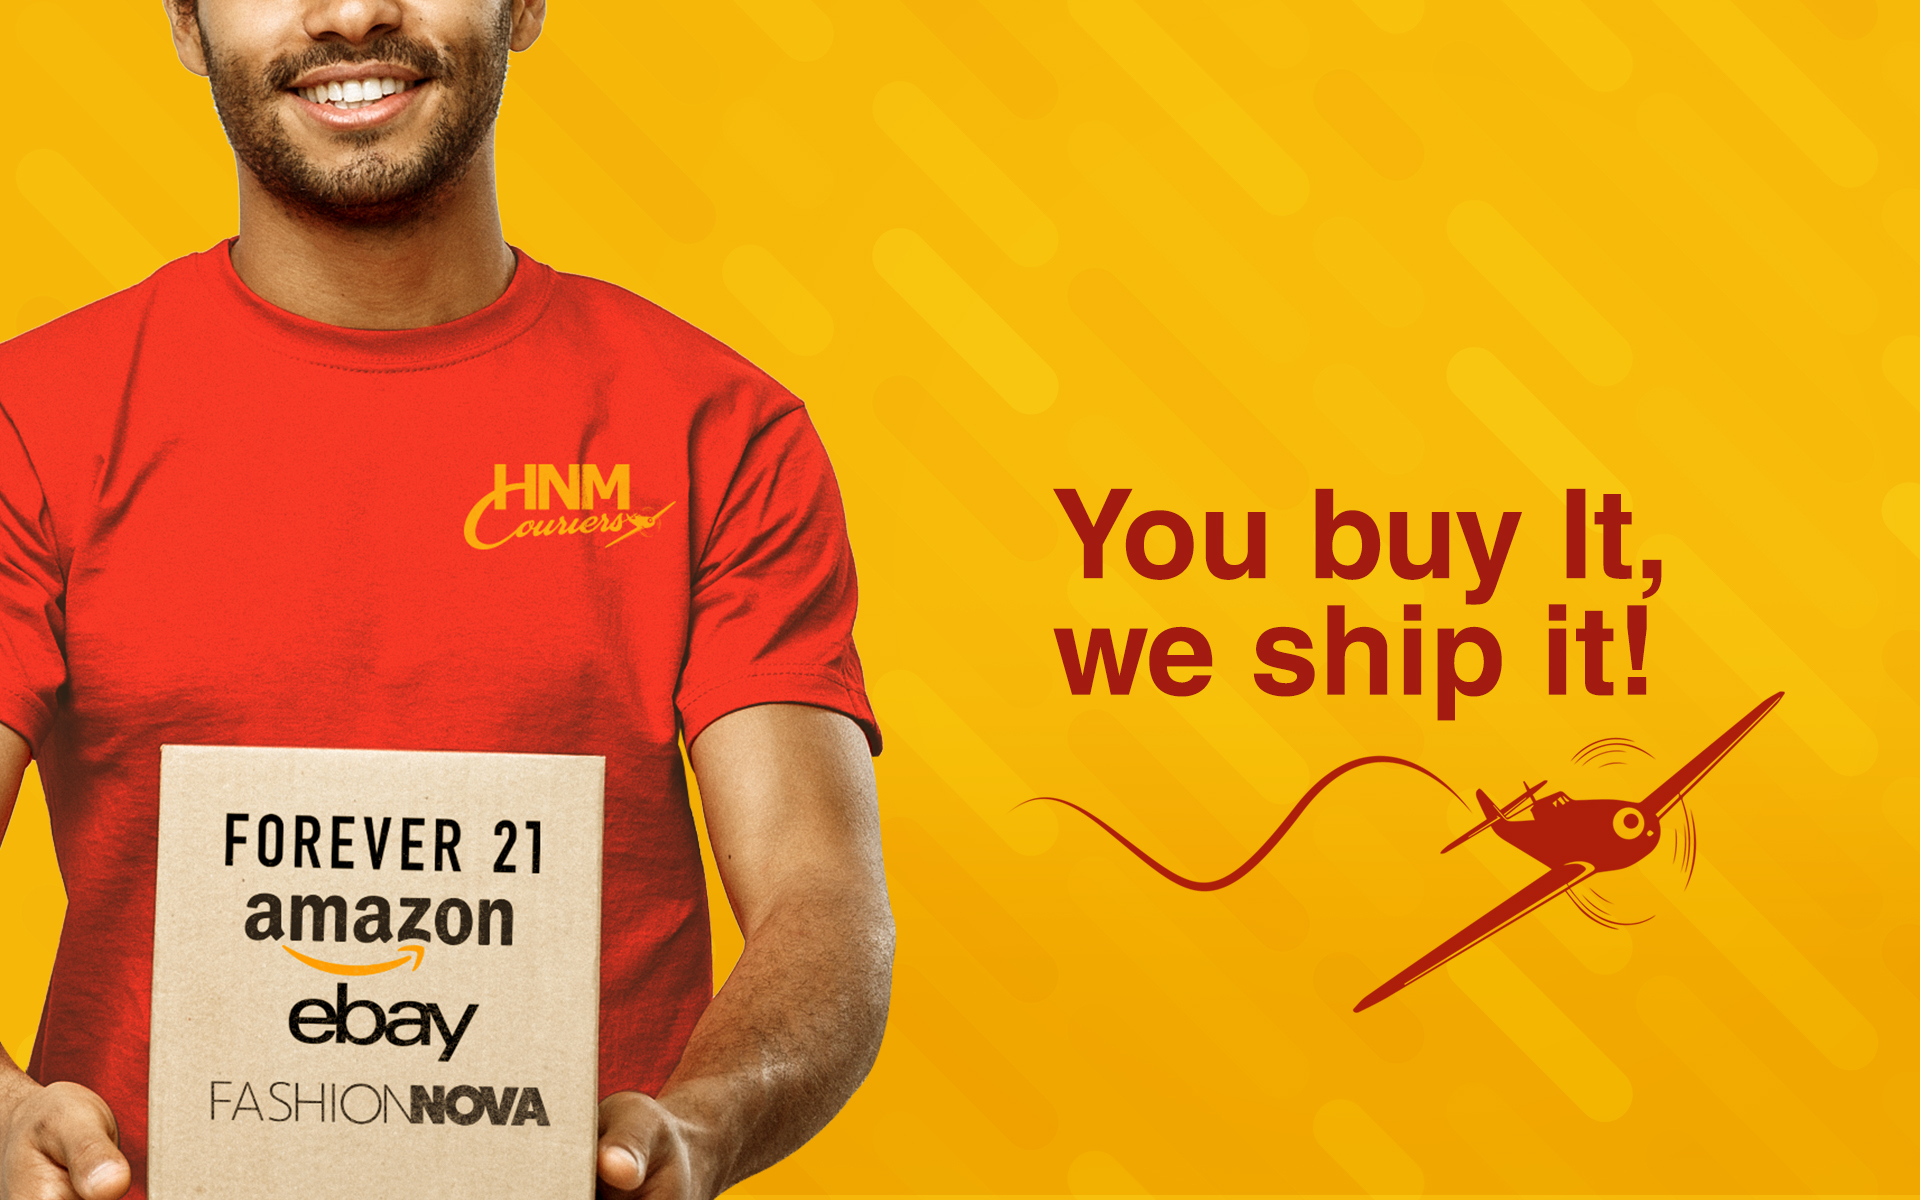 HNM Couriers is a freight forwarding service provider that fulfills your online shopping desires. You buy it, we ship it!